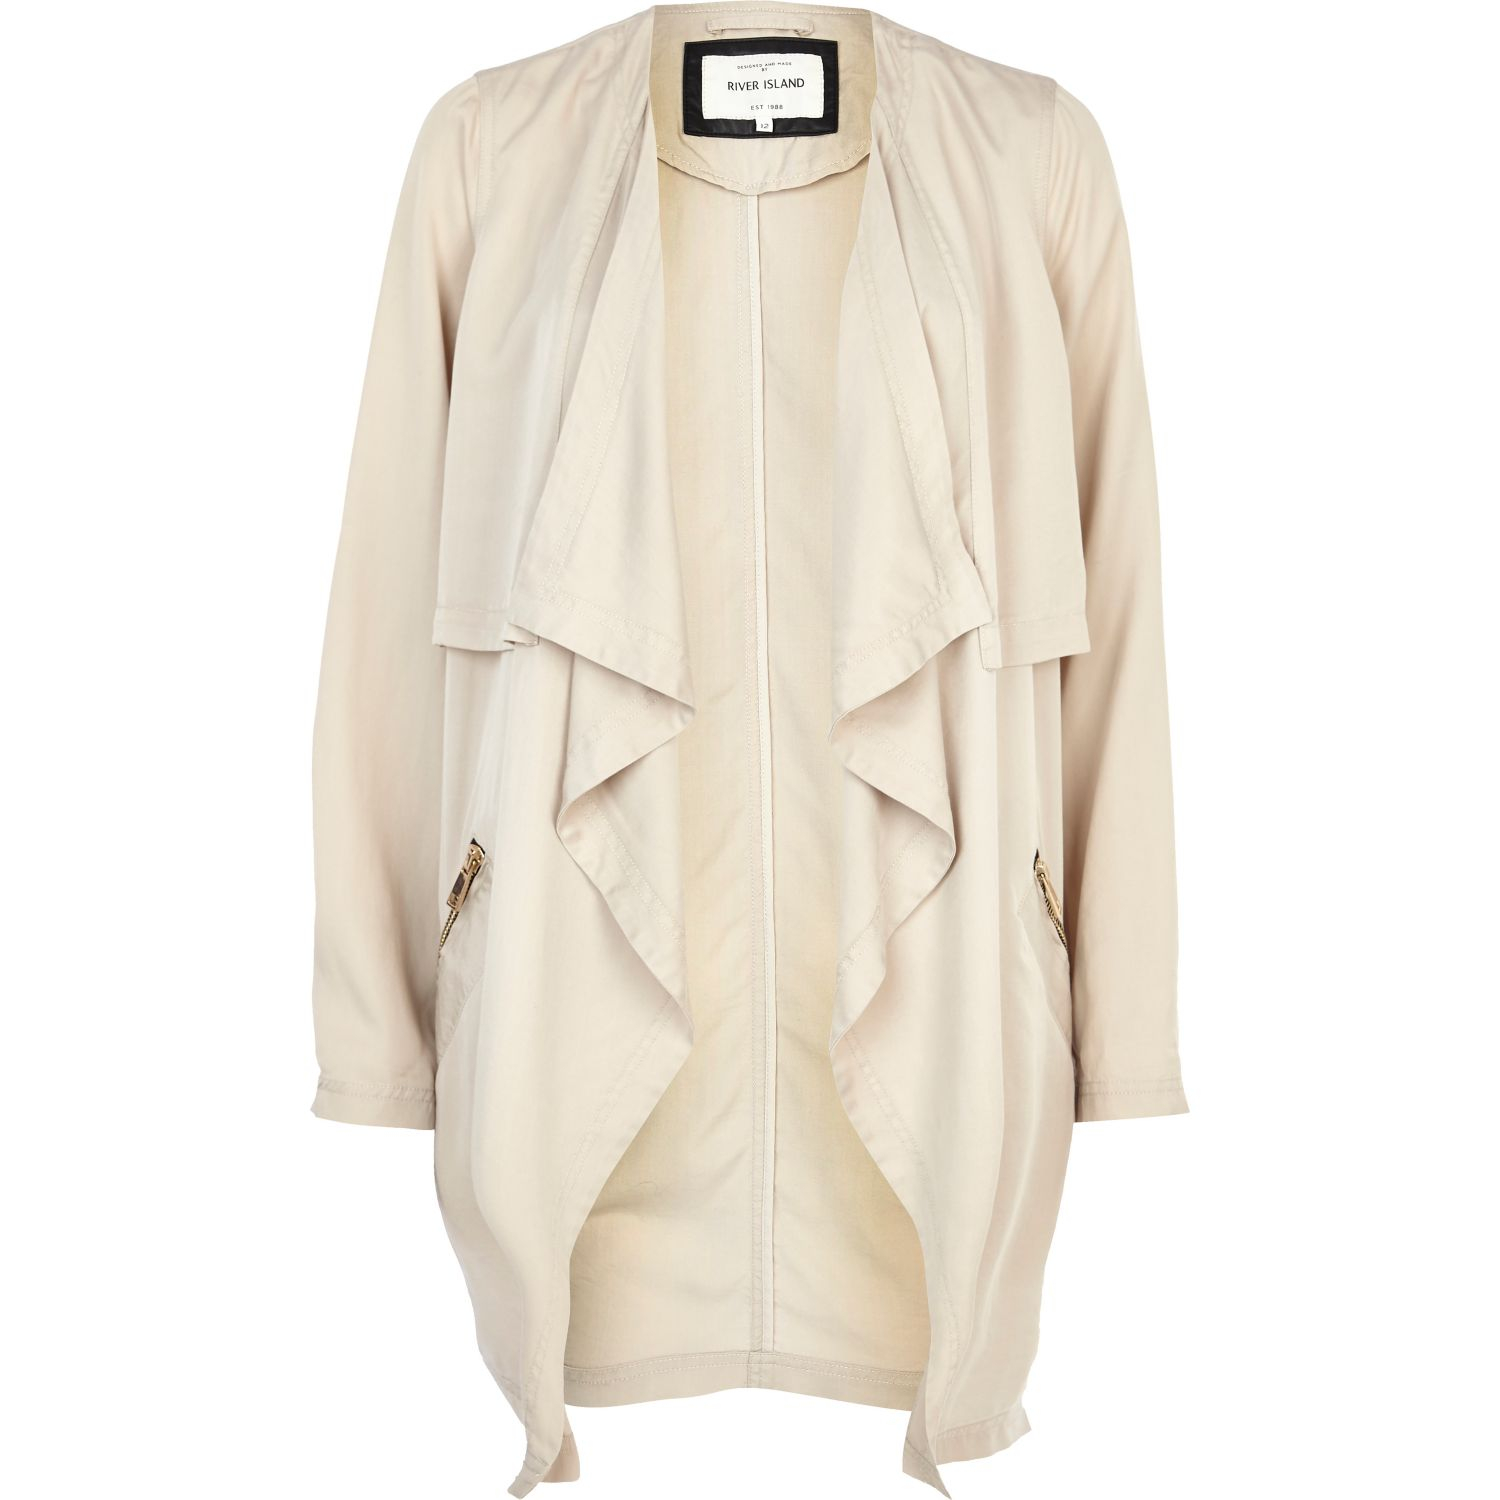 River island Cream Lightweight Waterfall Jacket in Natural | Lyst